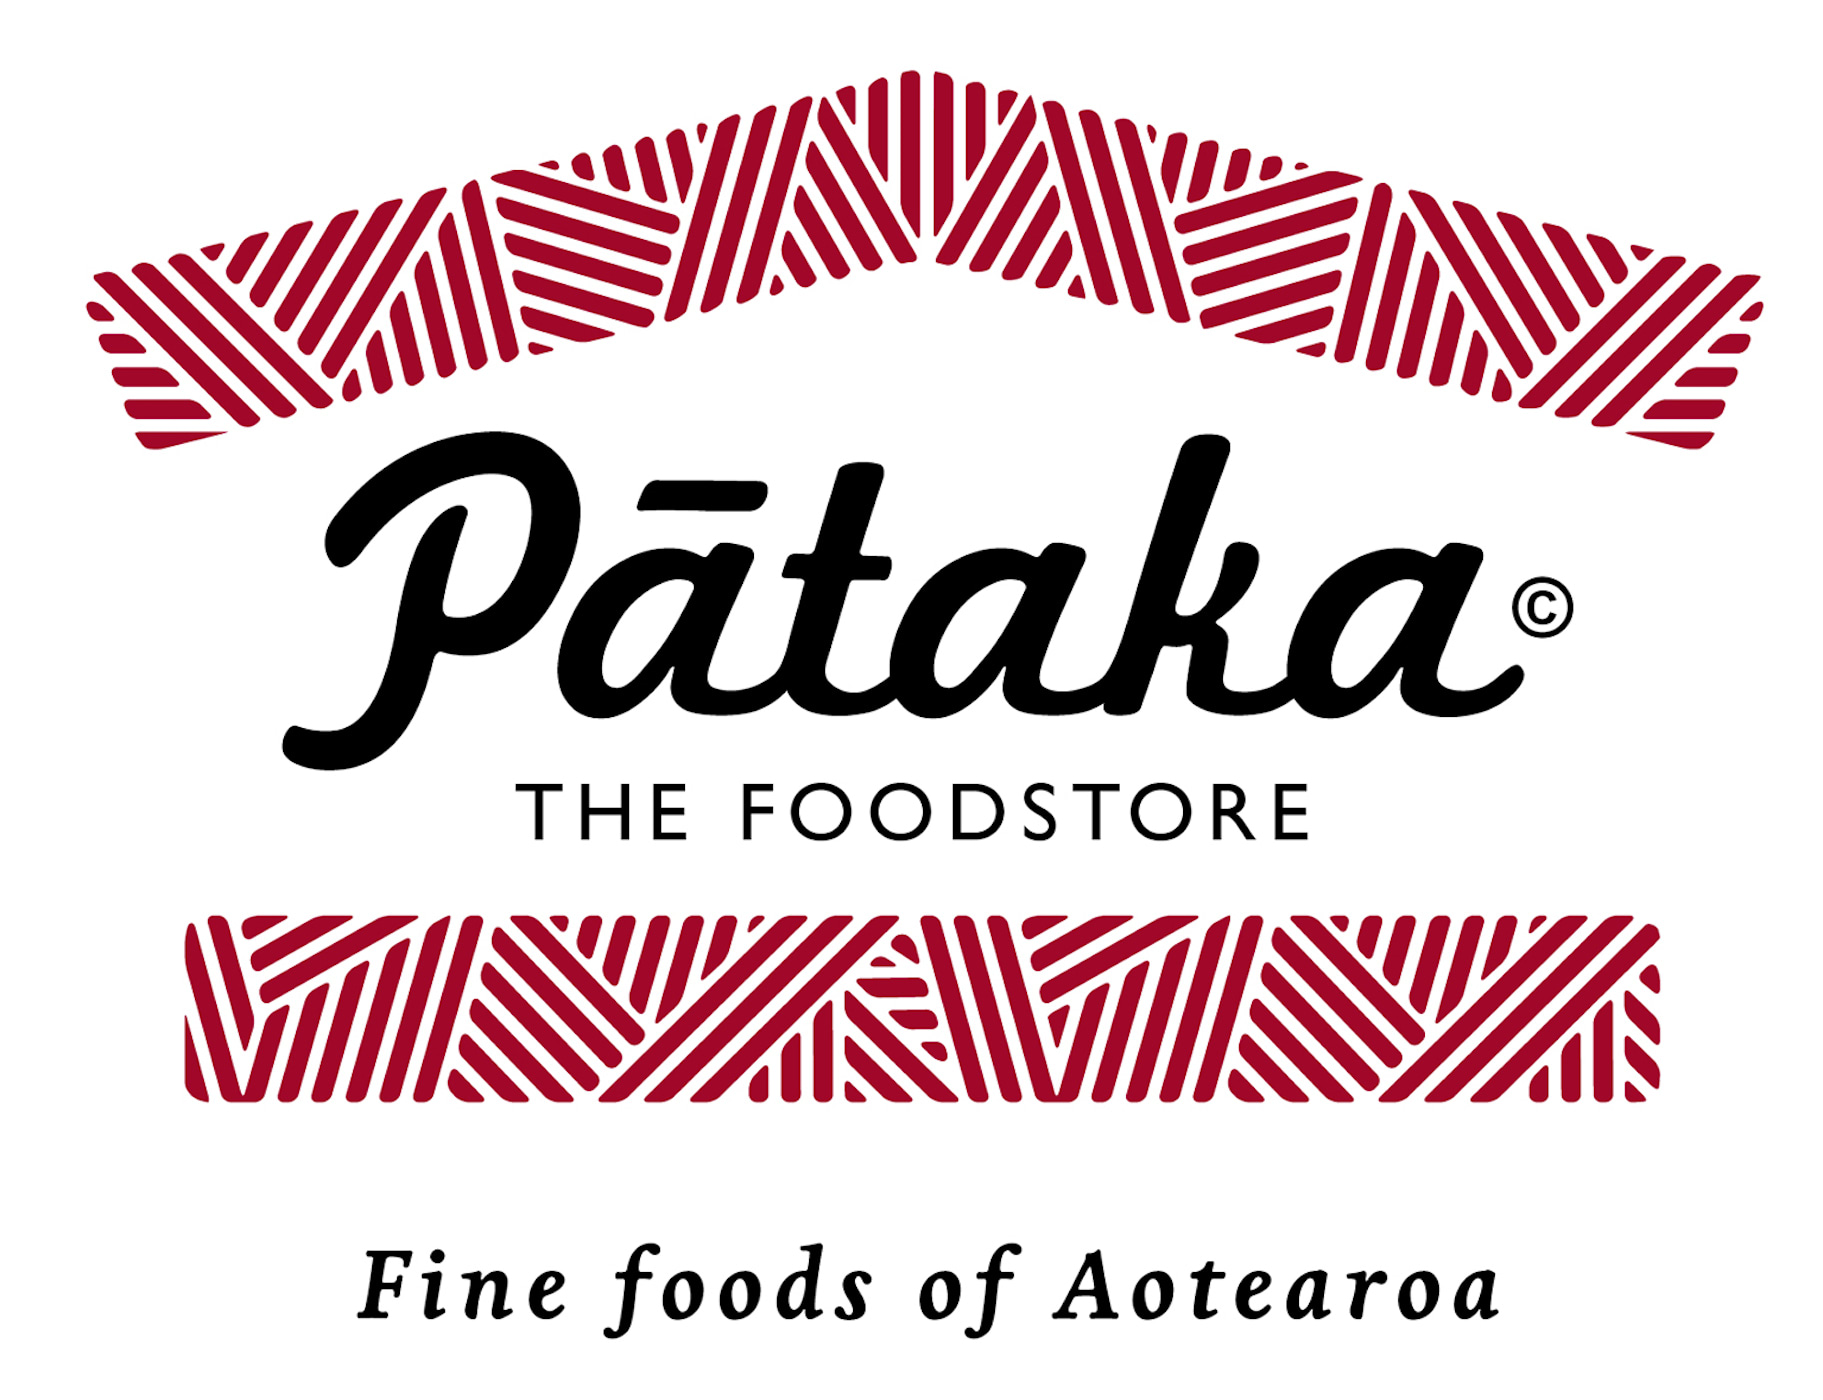 Pataka The Foodstore